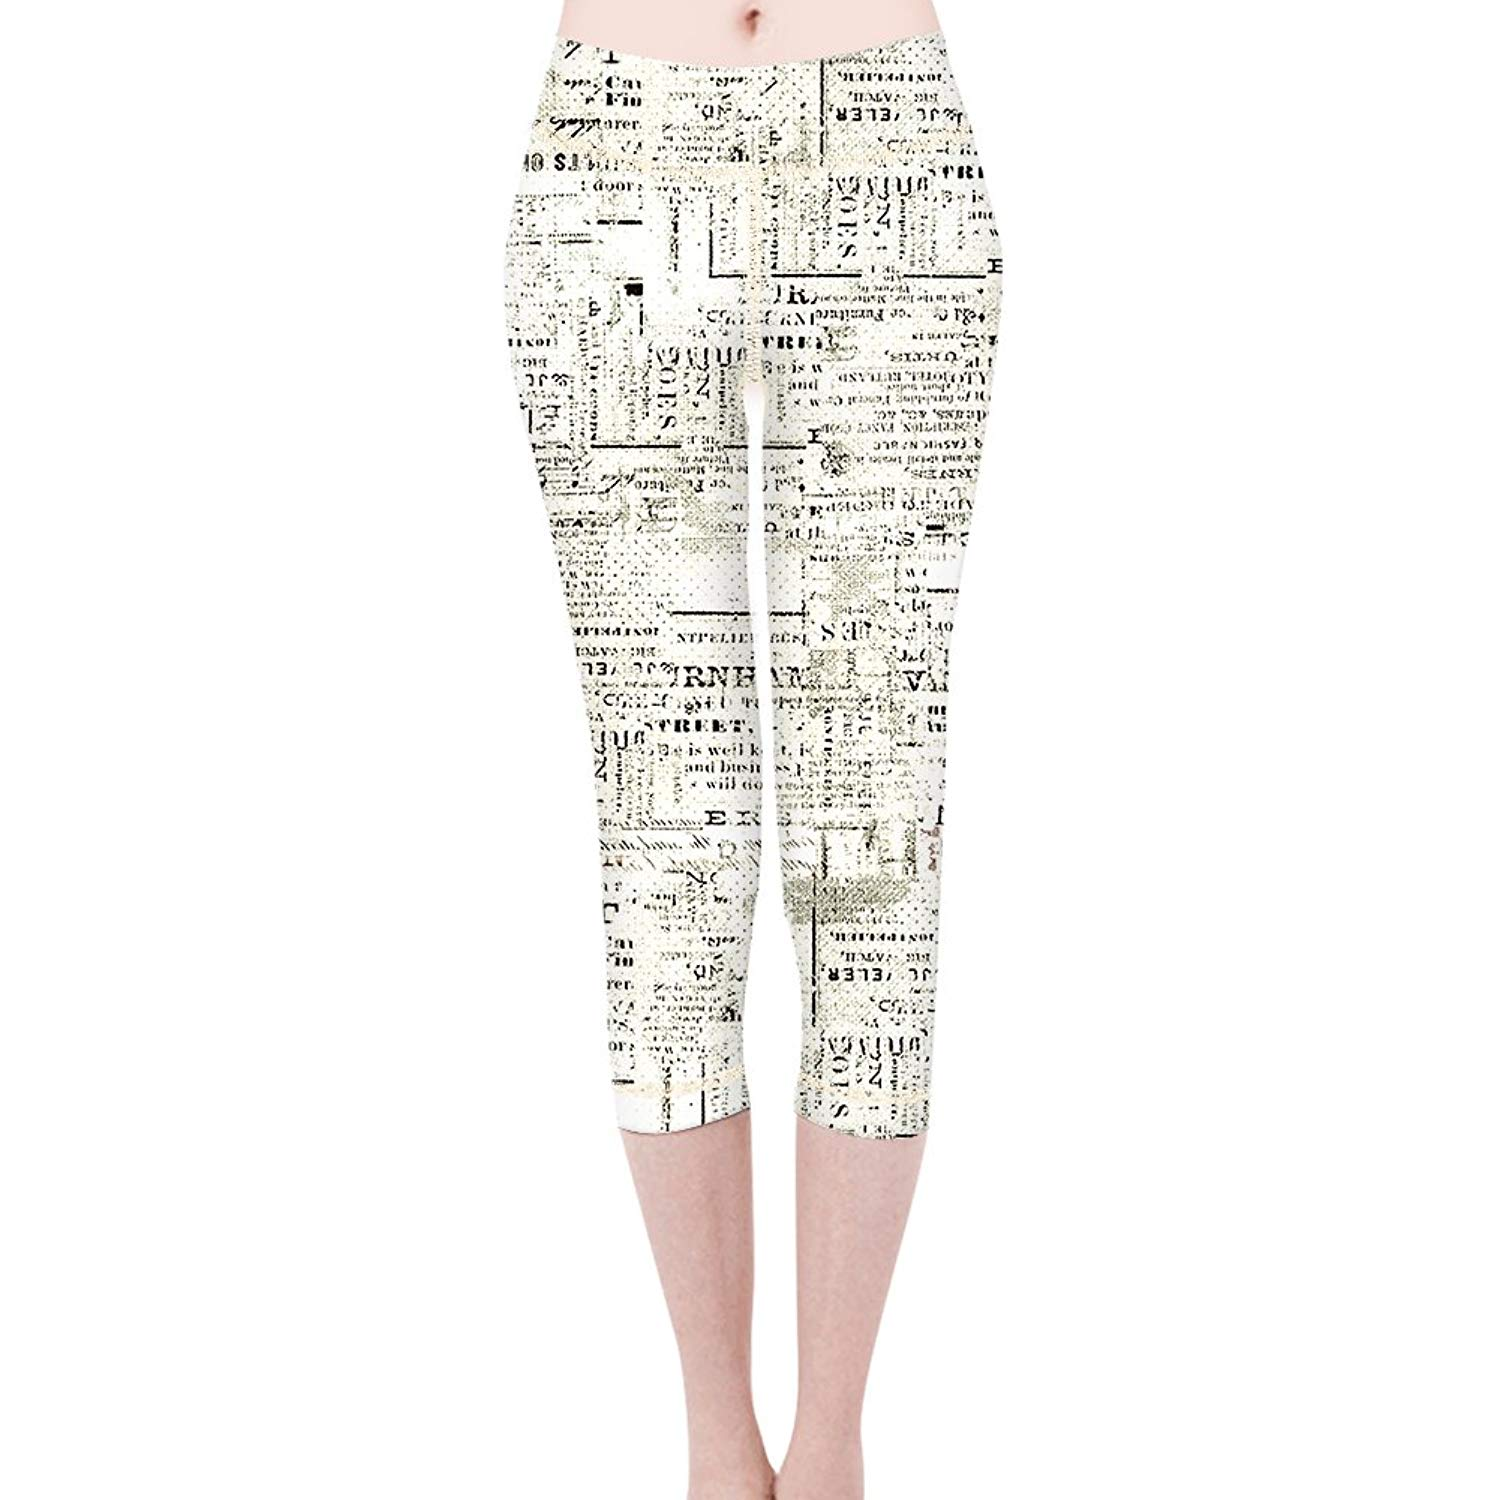 32c7702a1cbfd Get Quotations · Yoga Capris Newspaper Printed High Waist Stretch Workout  Pants Leggings for Women